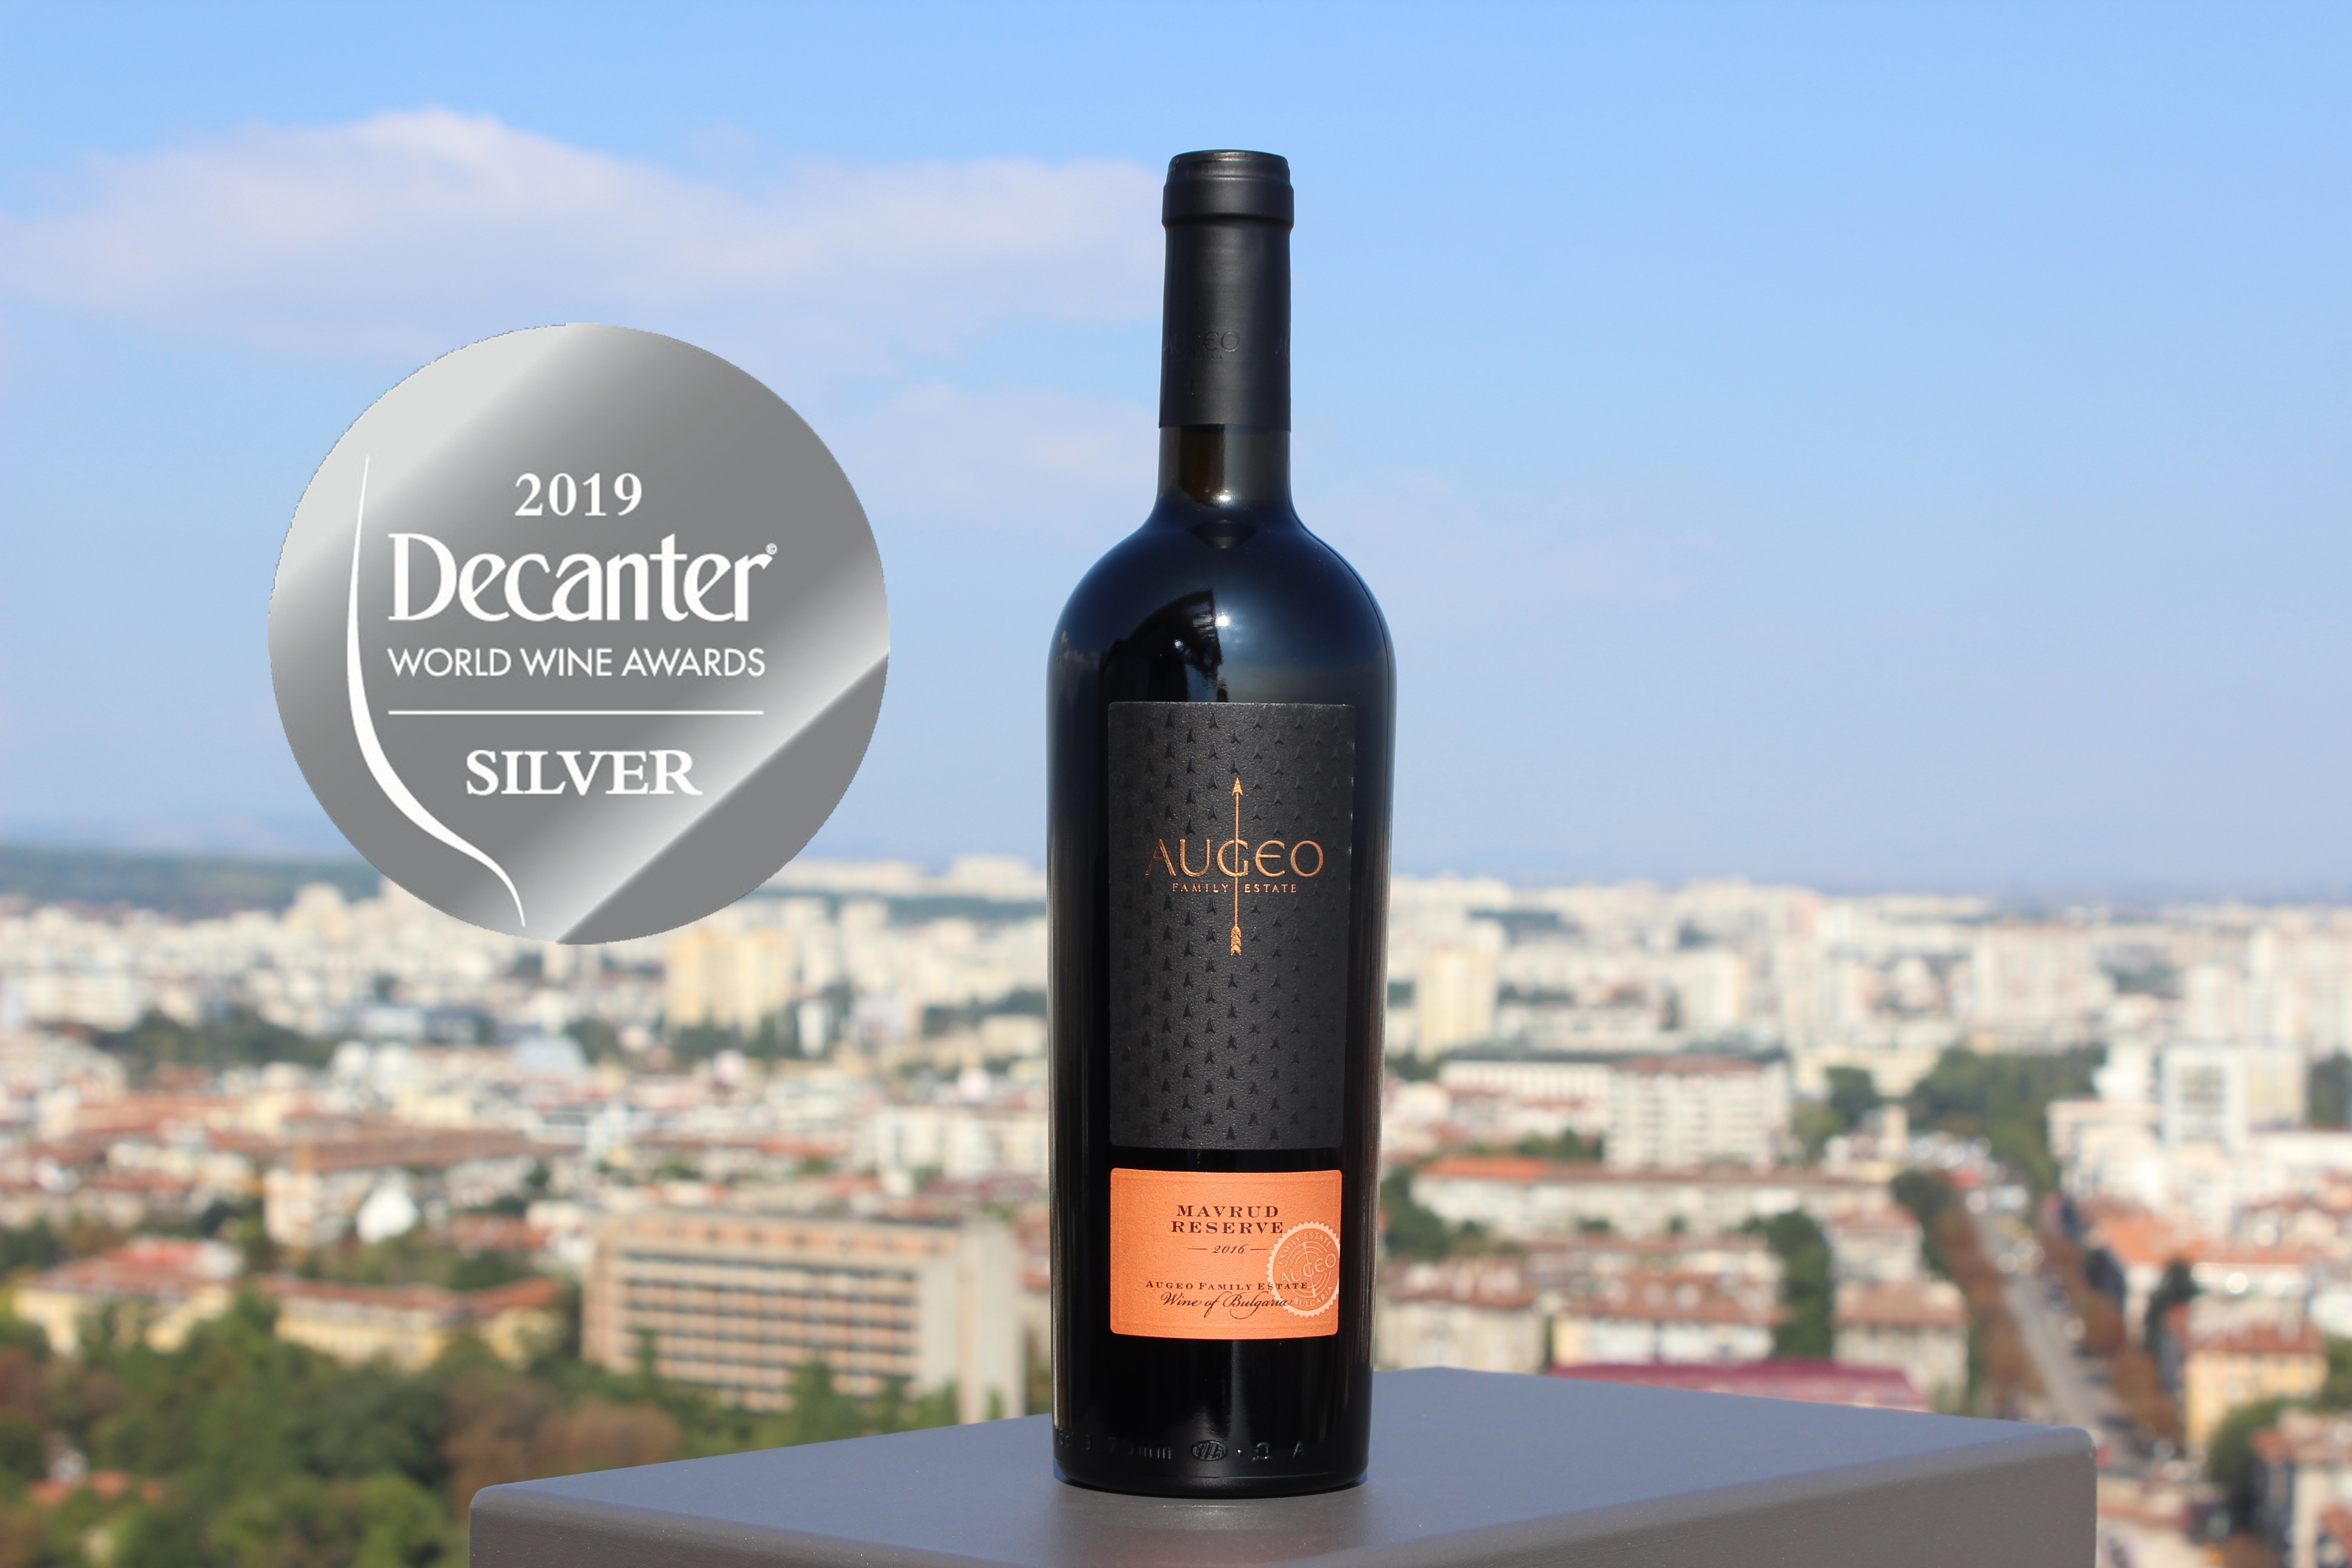 Augeo Mavrud with a Silver Medal at Decanter